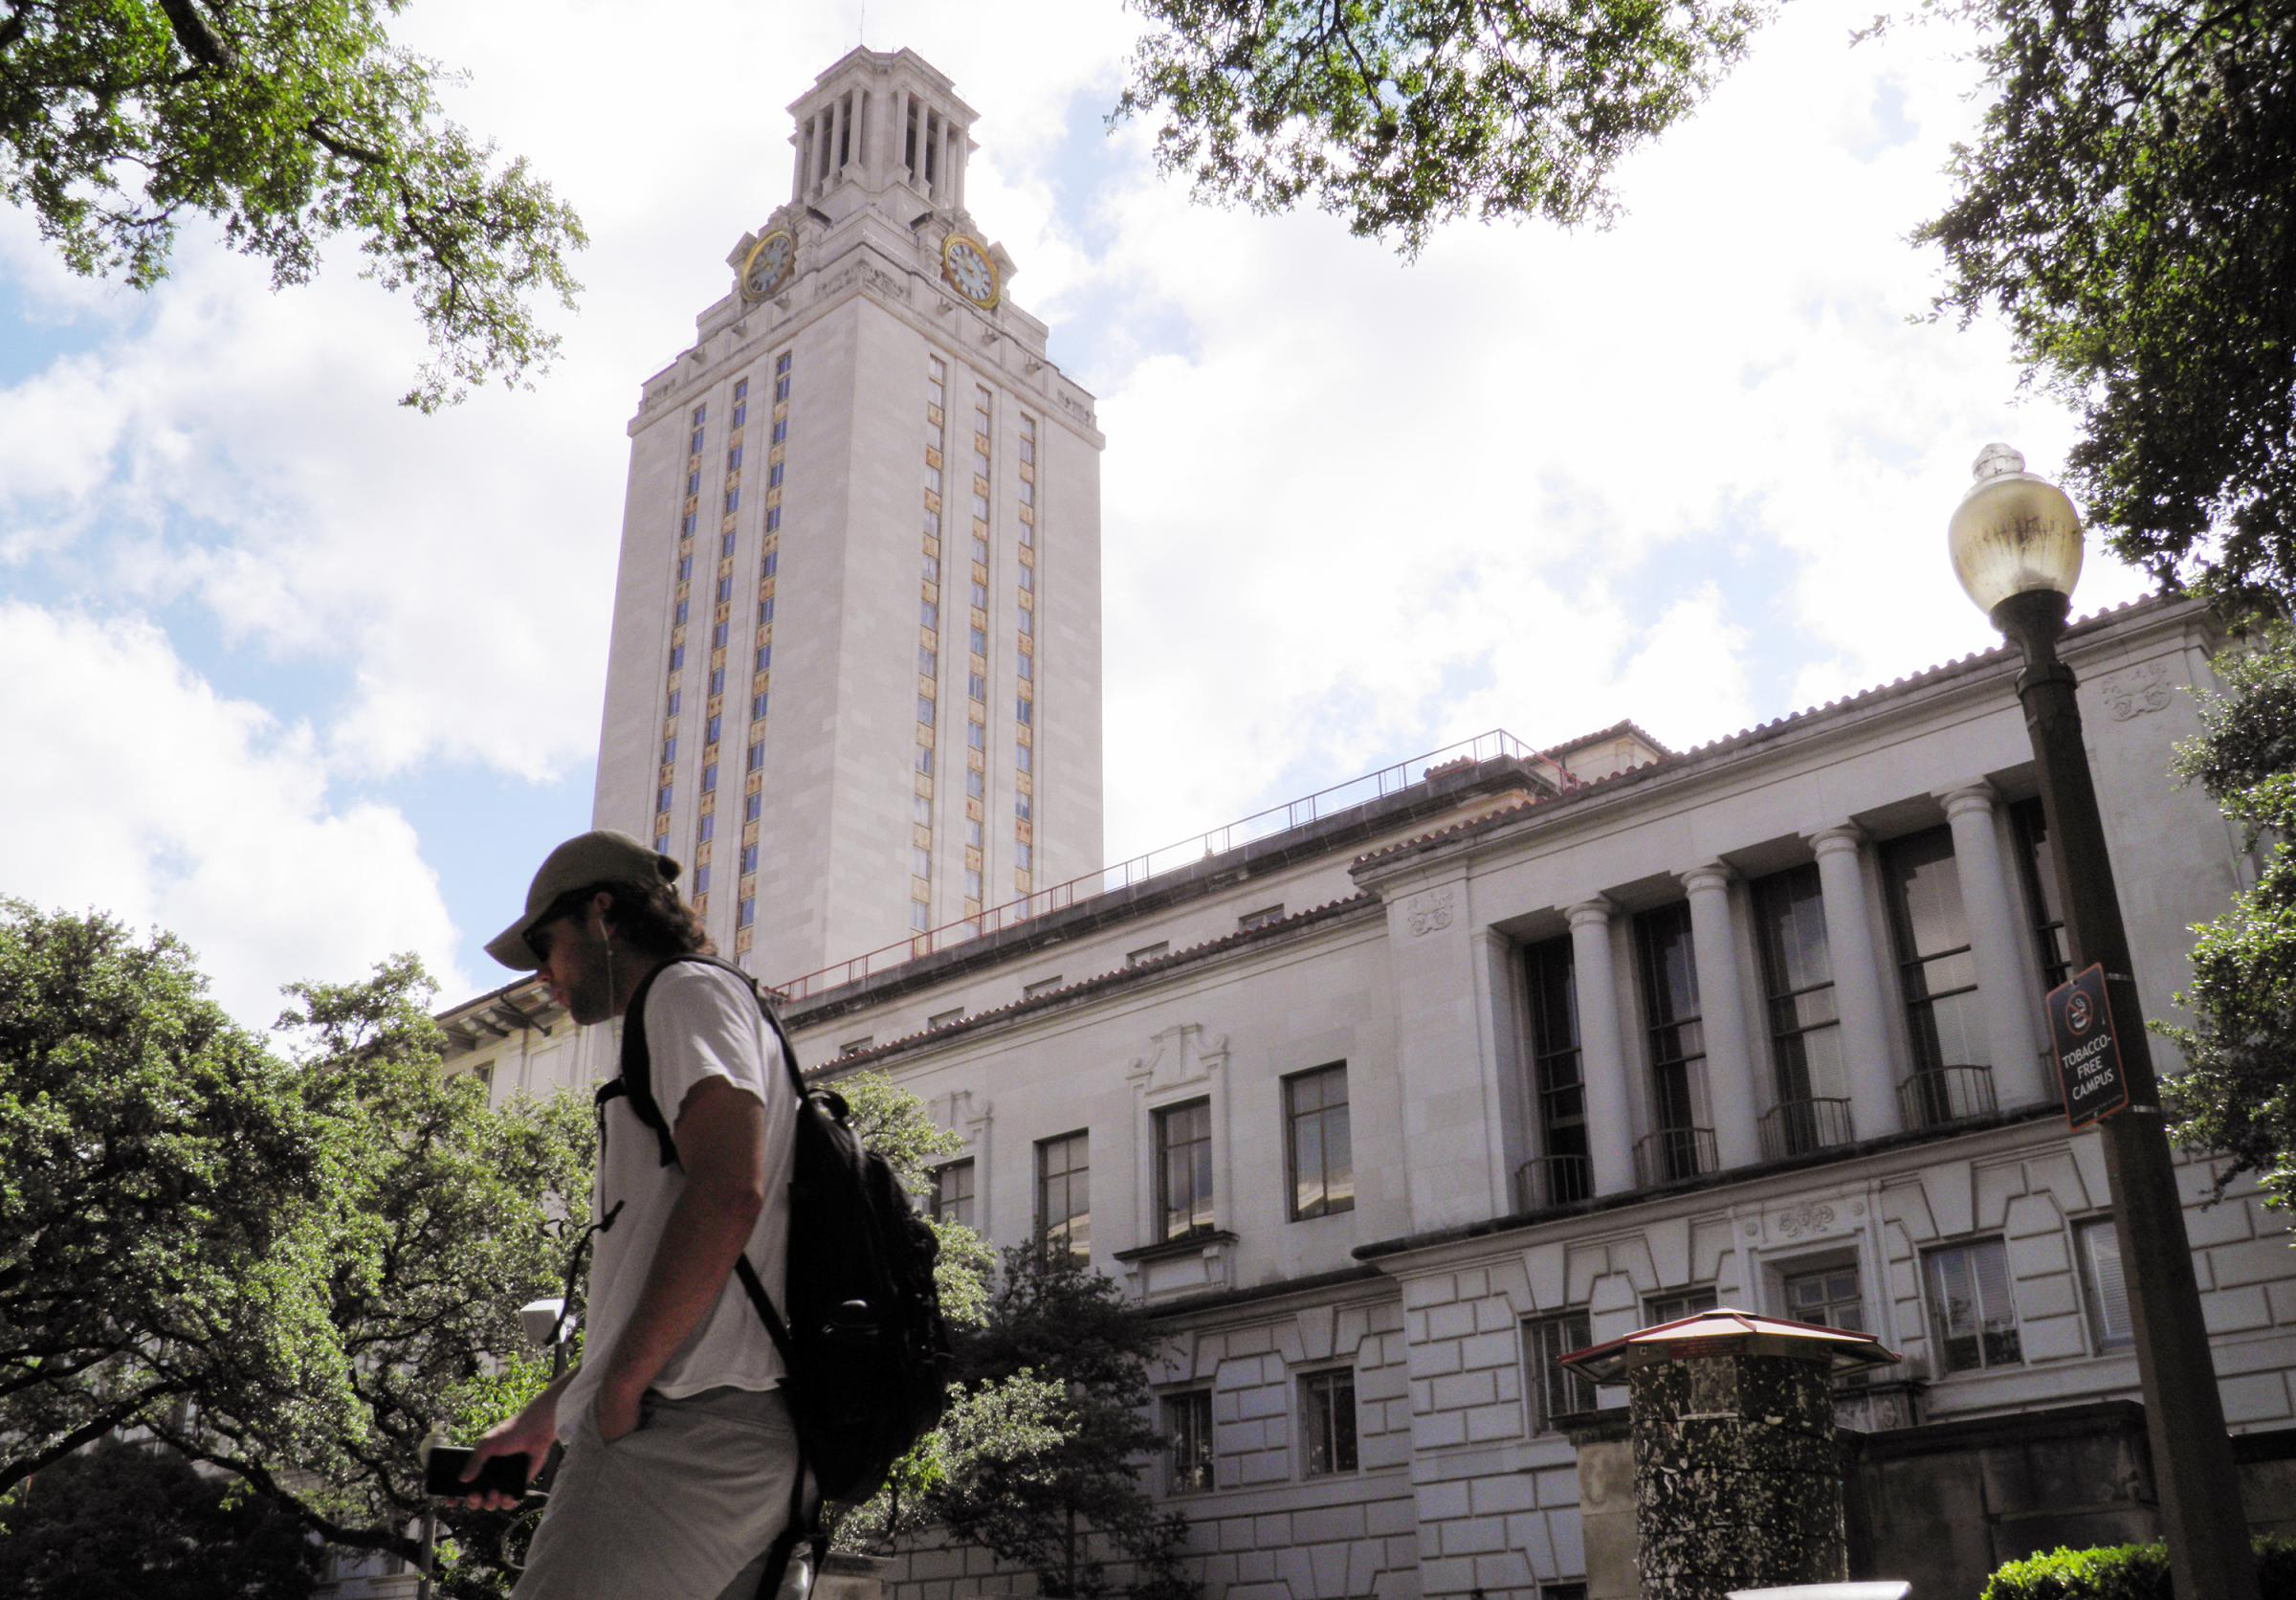 Ut Austin Fall 2020 Course Schedule University of Texas Austin Promises Free Tuition For Low Income